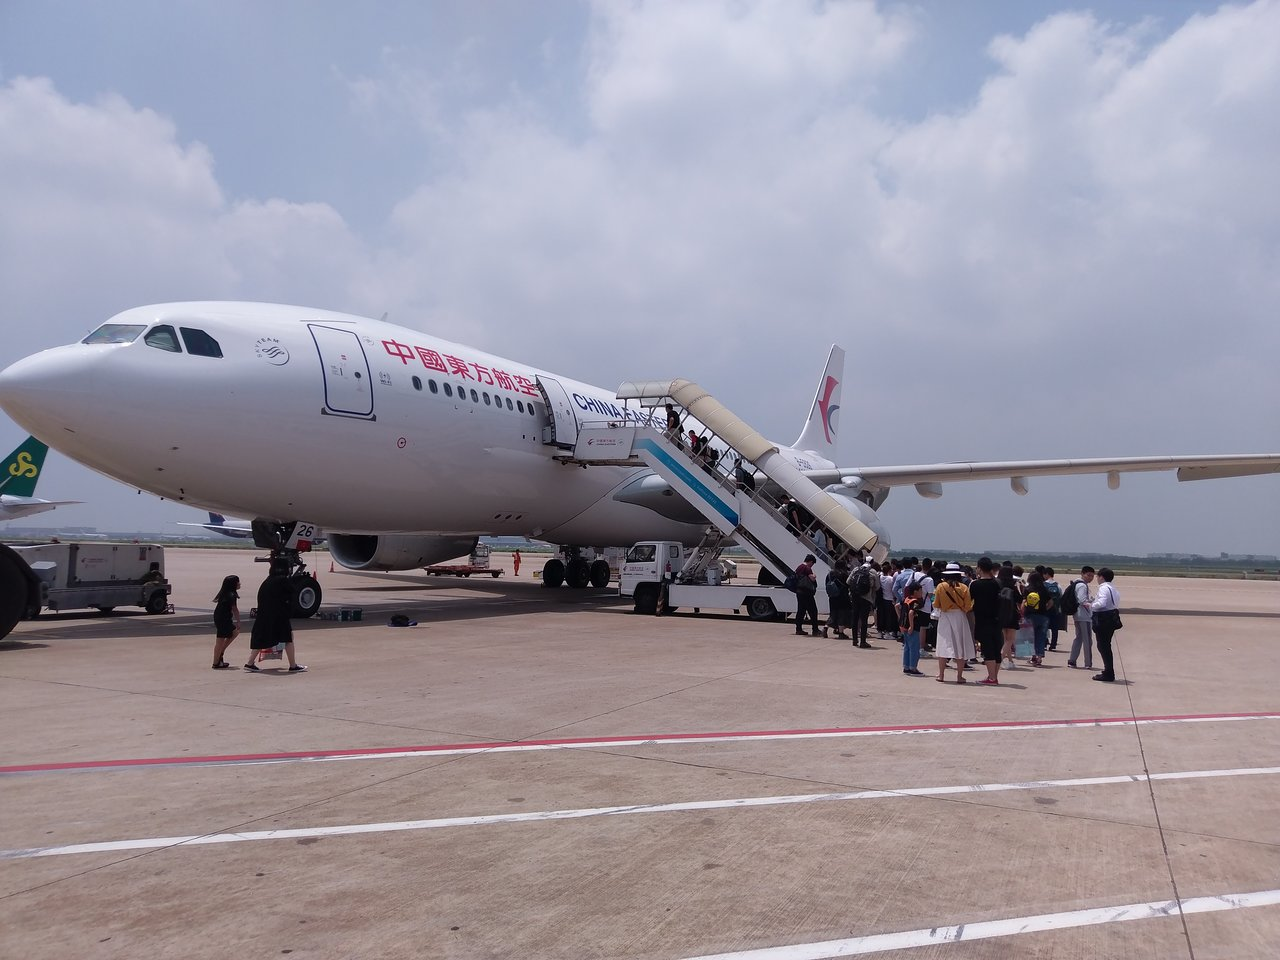 China Eastern Airlines Flights and Reviews (with photos